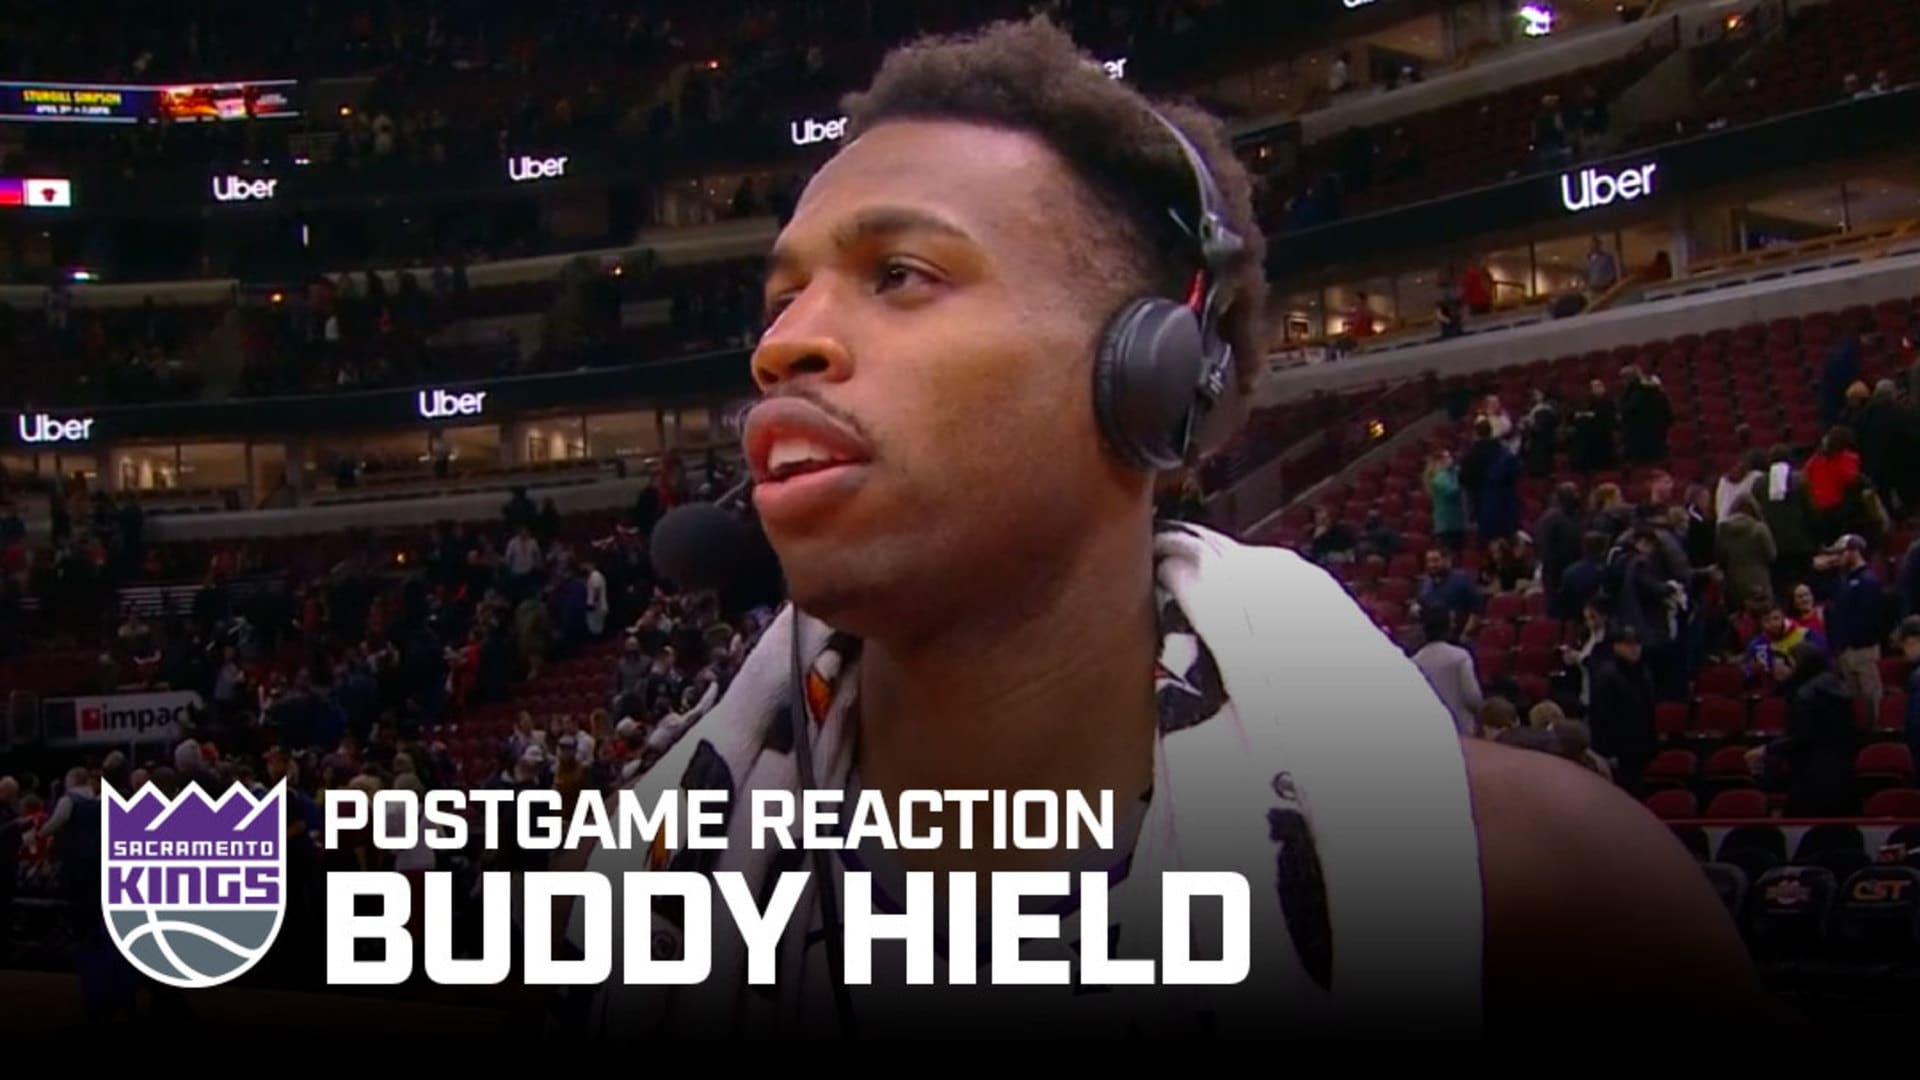 'Any Win We Could Take, We'd Love to Have That' | Buddy Hield Postgame Interview 1.24.20